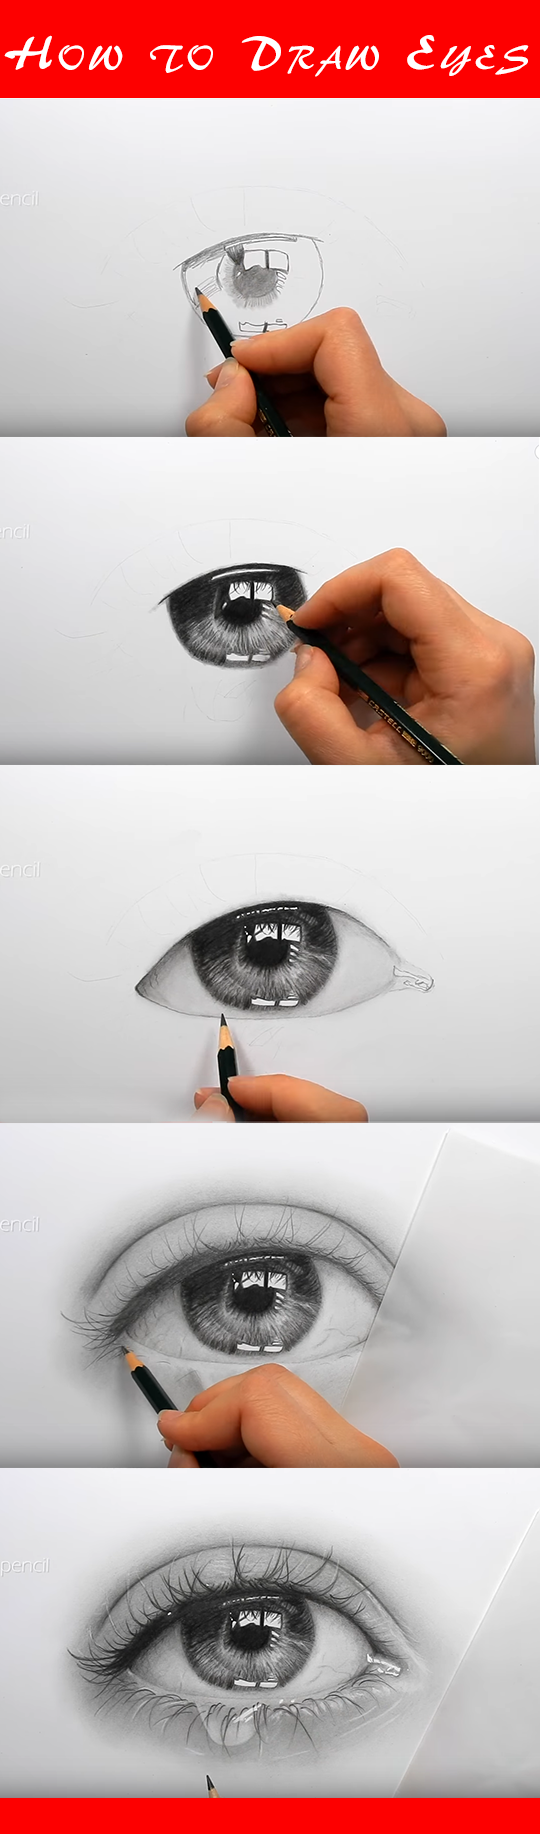 With The Room In Mind In The Reflection Draw Realistic Eyes With This Step